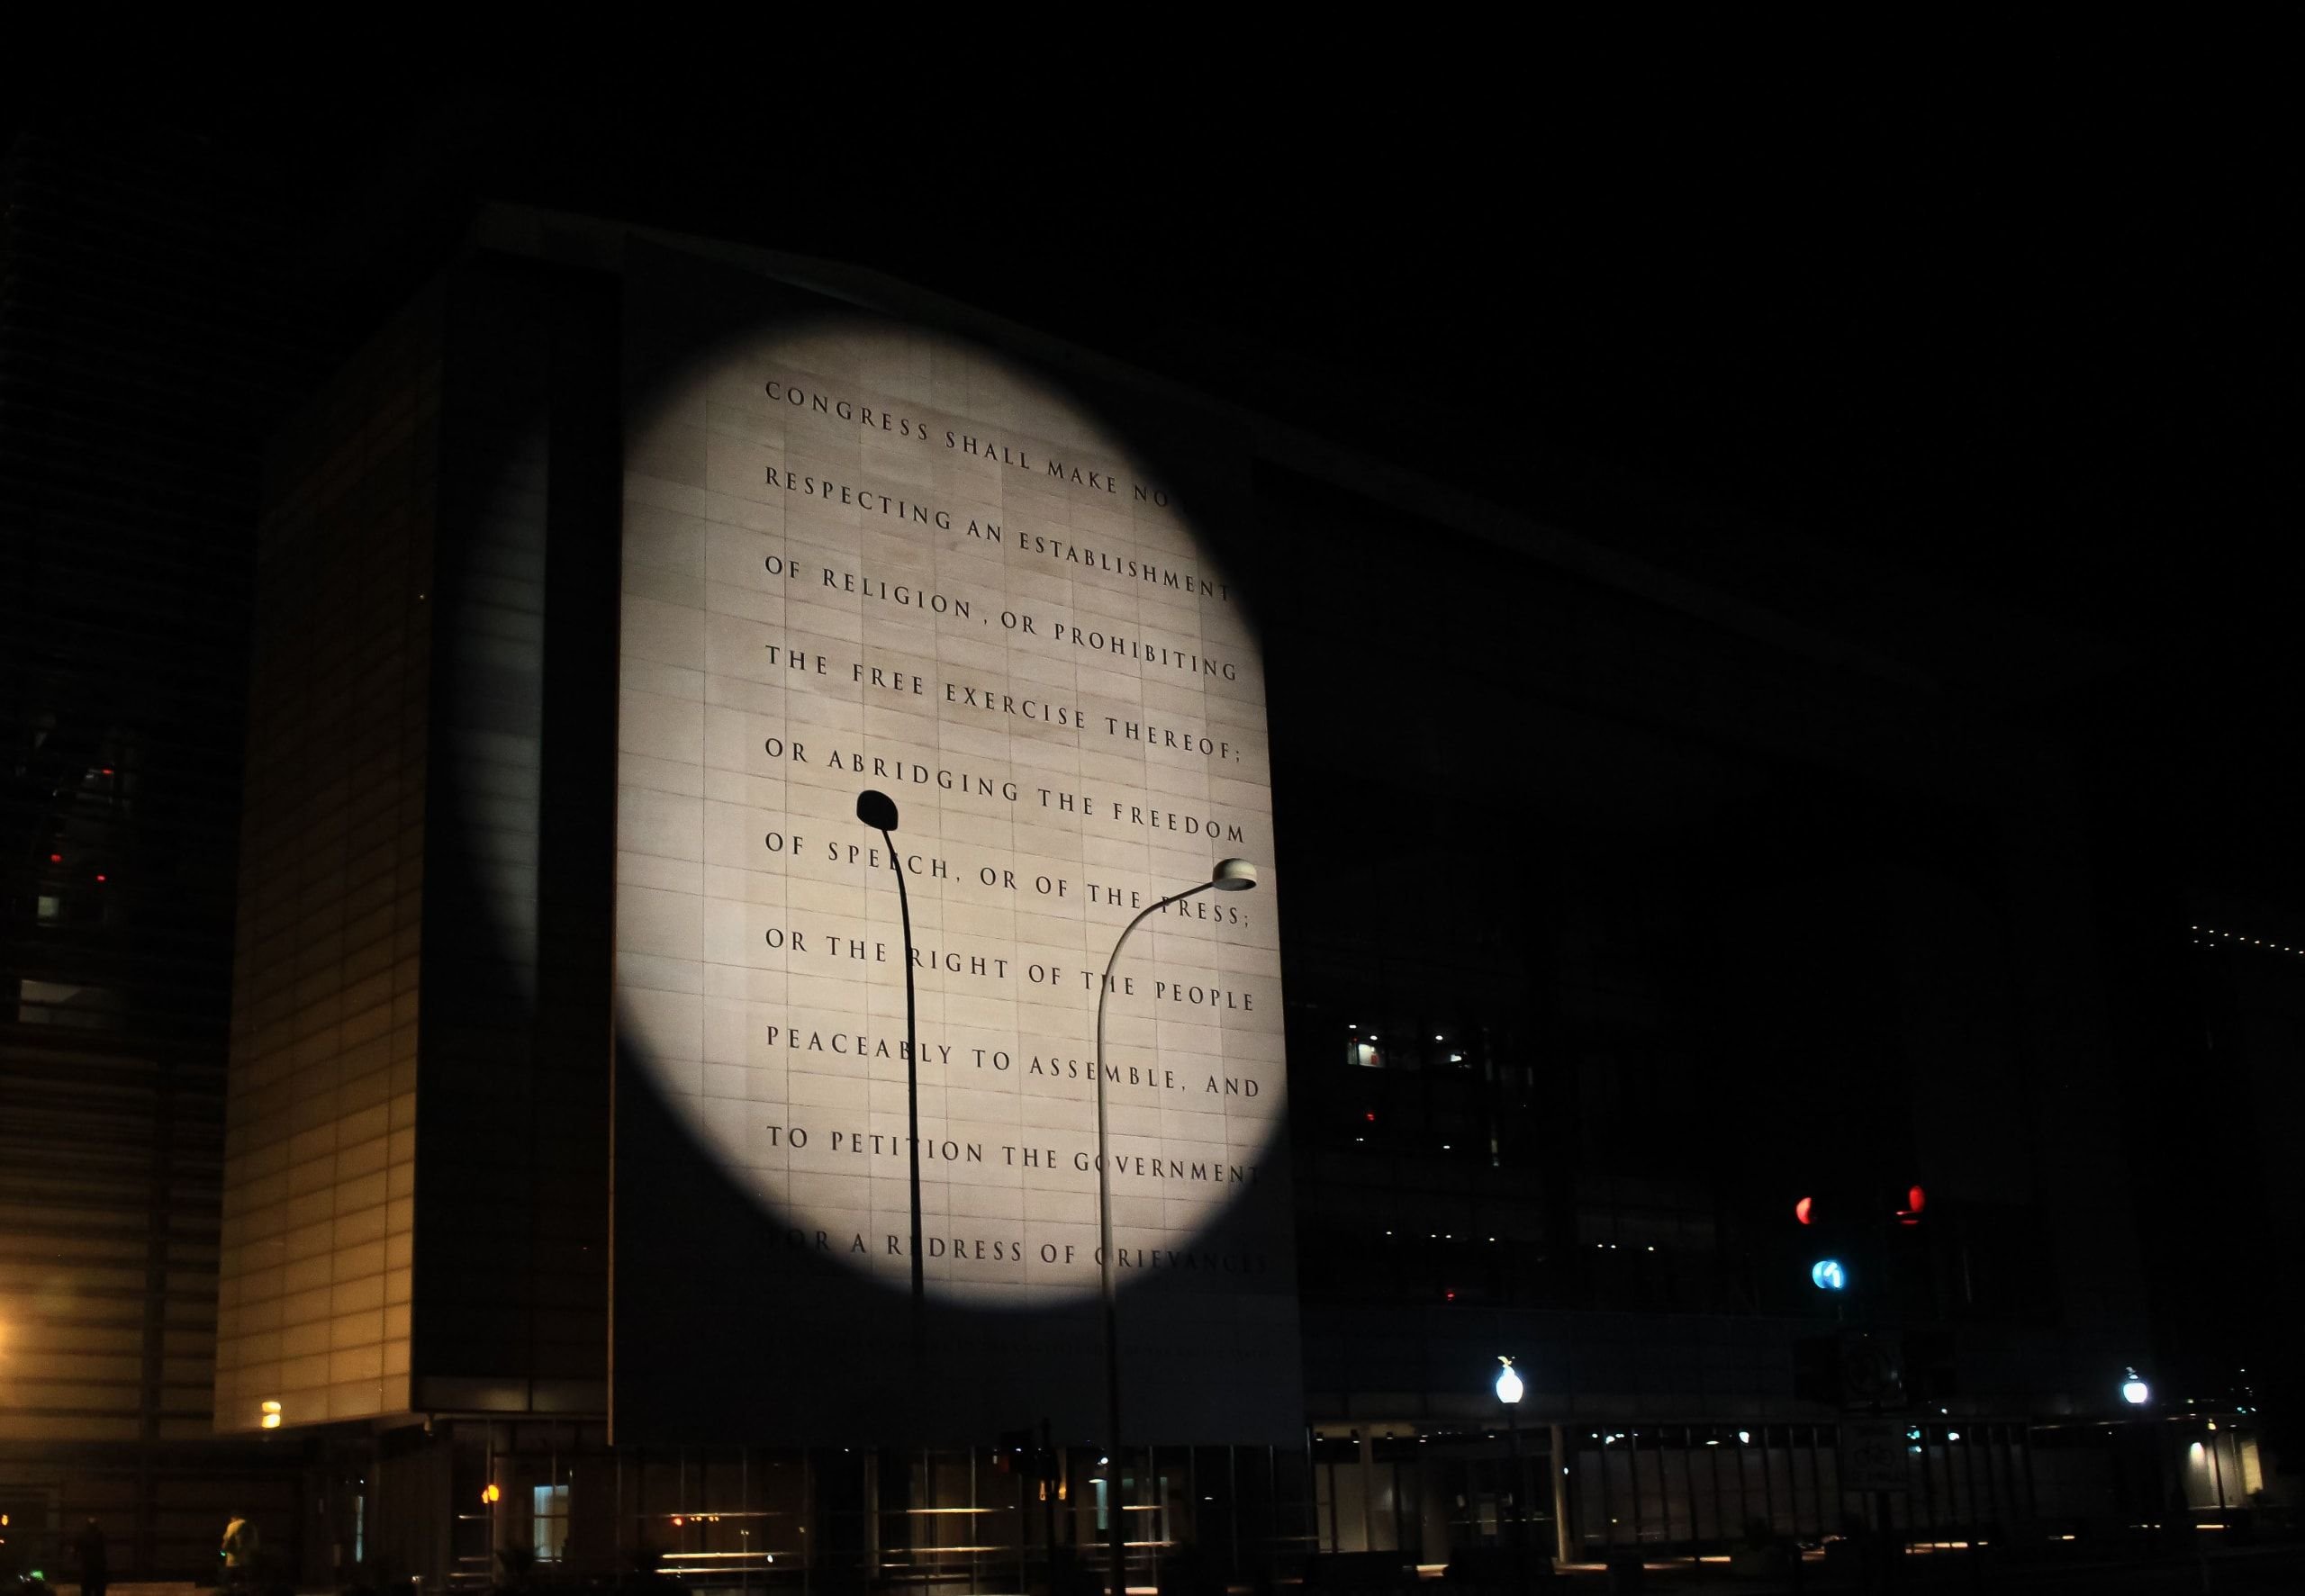 projections against police brutality